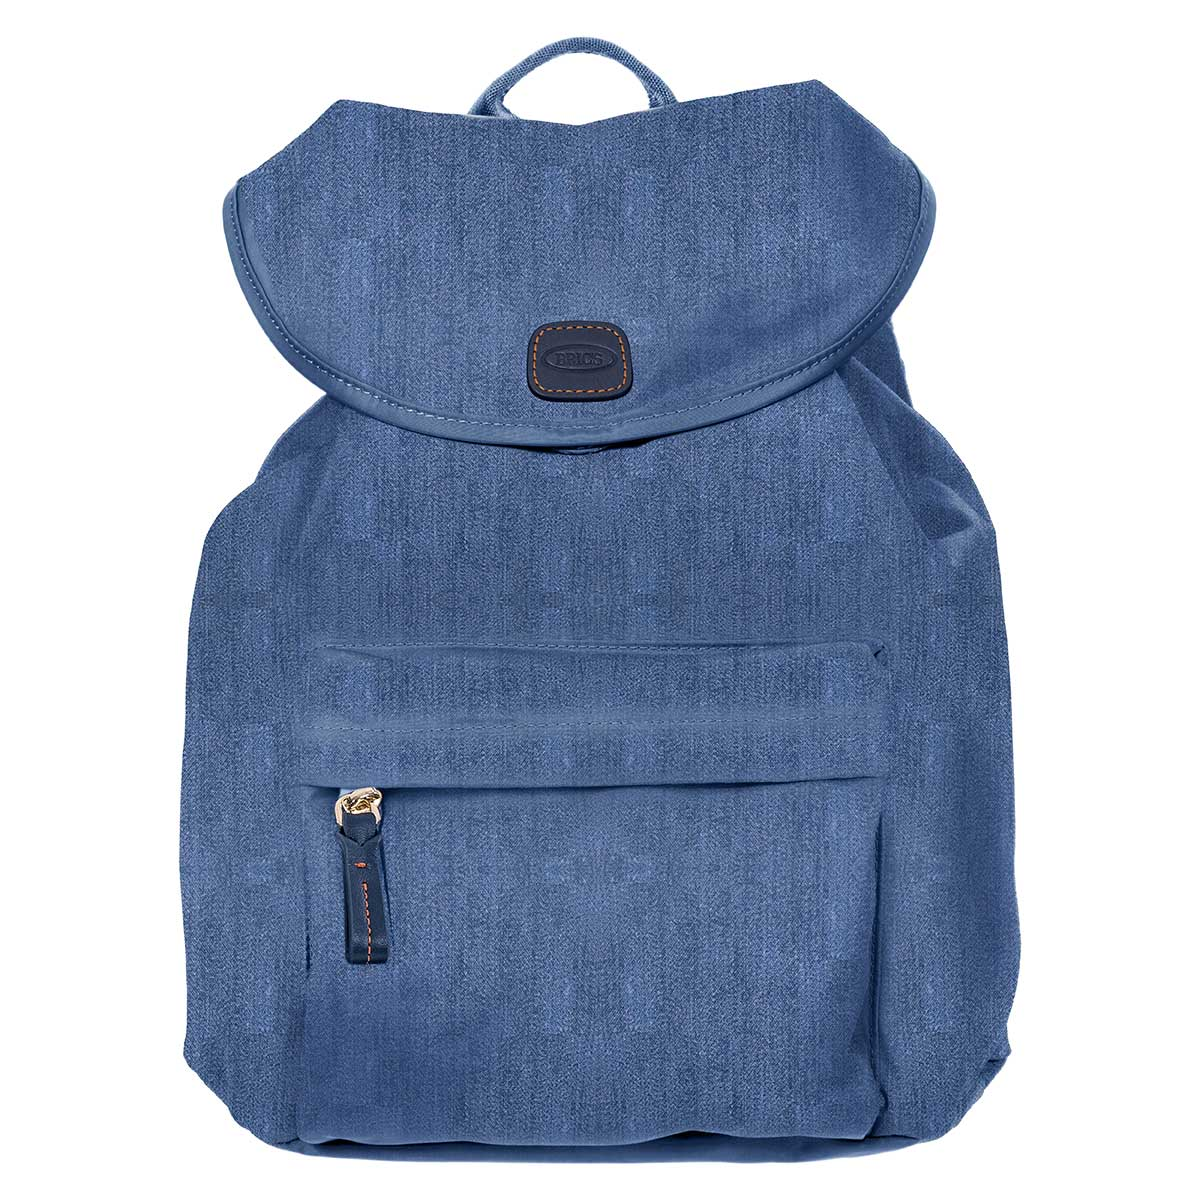 X-Bag City Backpack - Jean Blue | BRIC'S Travel Bags